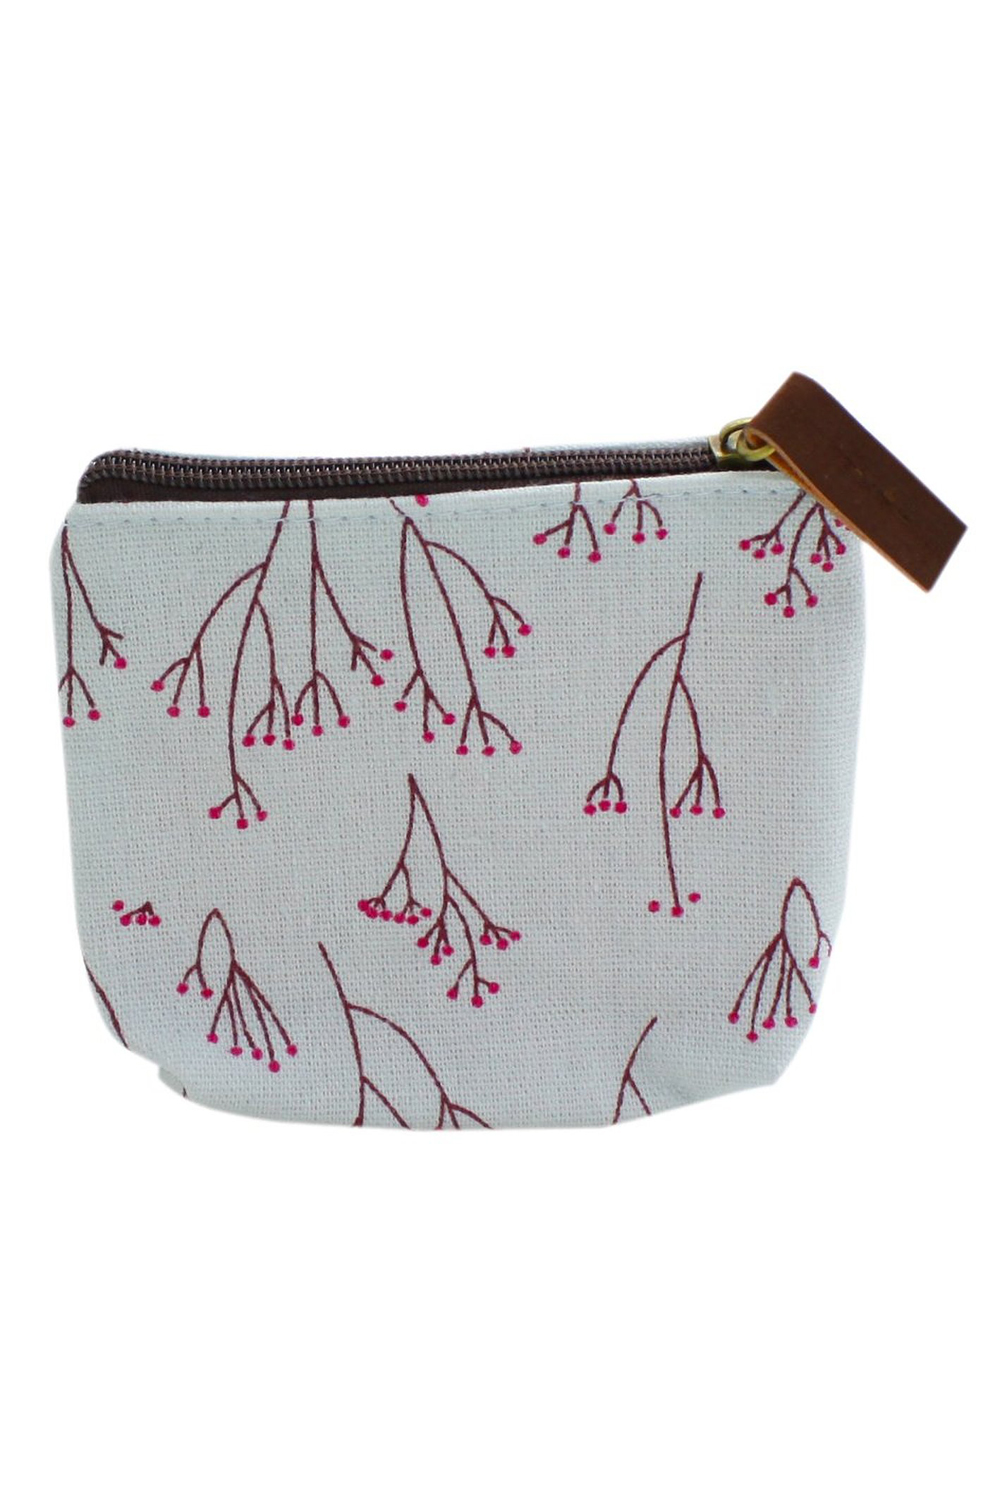 Lady Small Canvas Purse Wallet Coin(light blue)